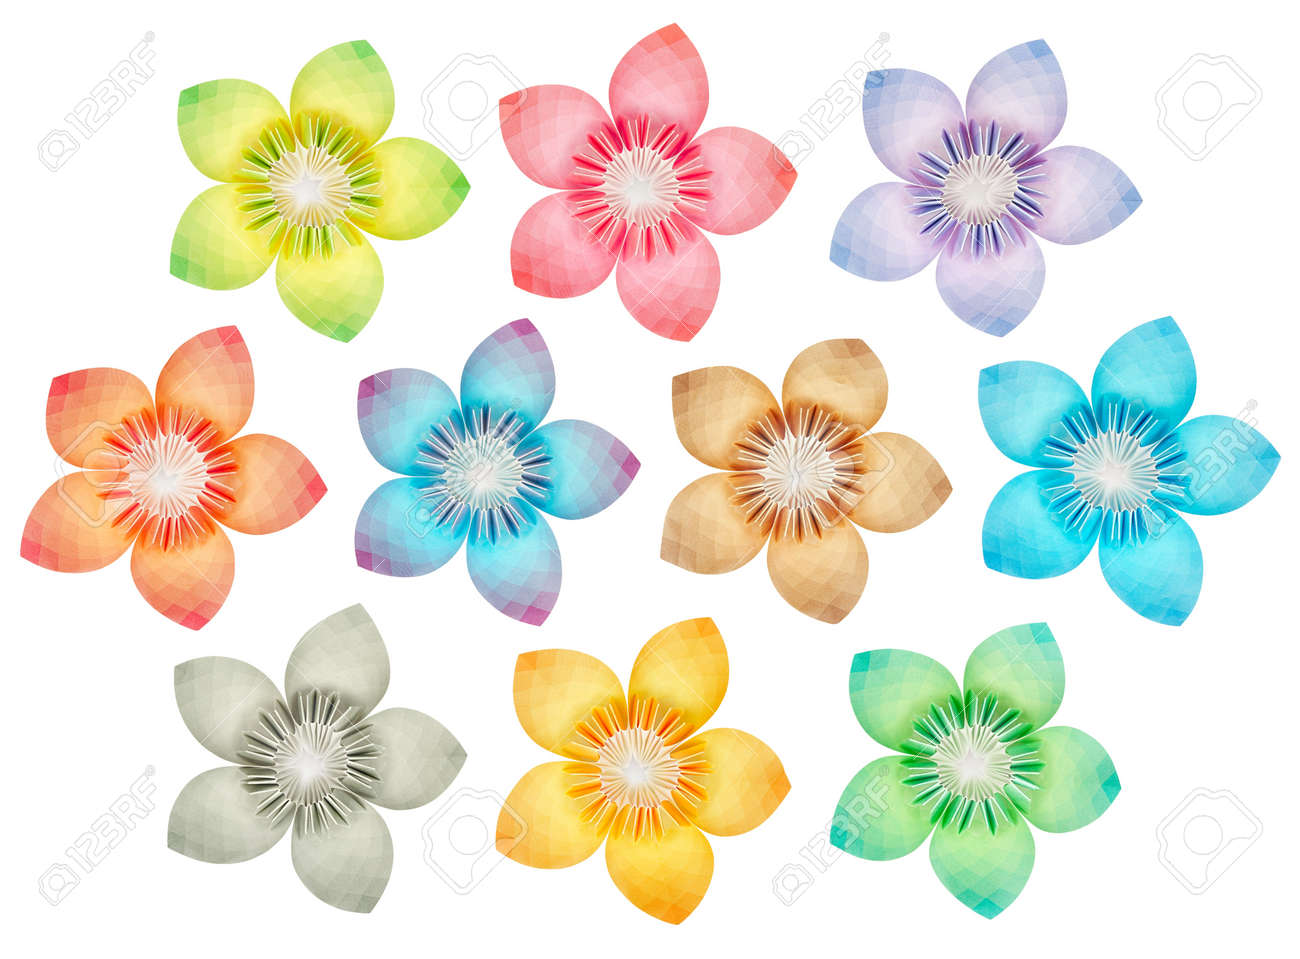 10 Isolated Paper Flowers On A Pure White Background Stock Photo